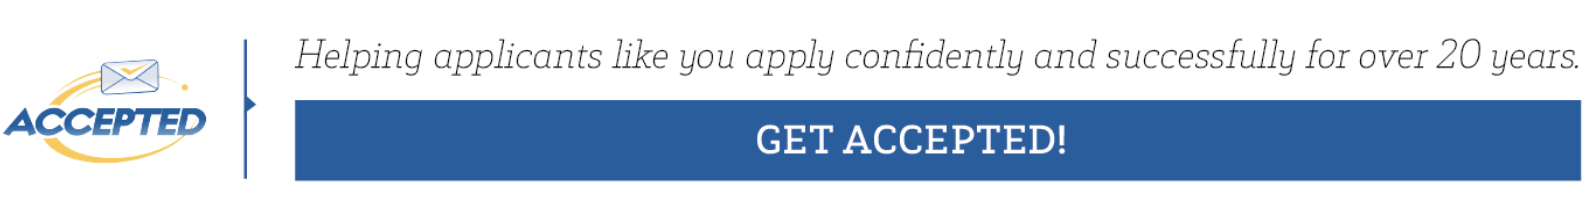 Accepted | Helping applicants like you apply confidently and successfully for over 20 years. <>&#8220;/> <a onclick=